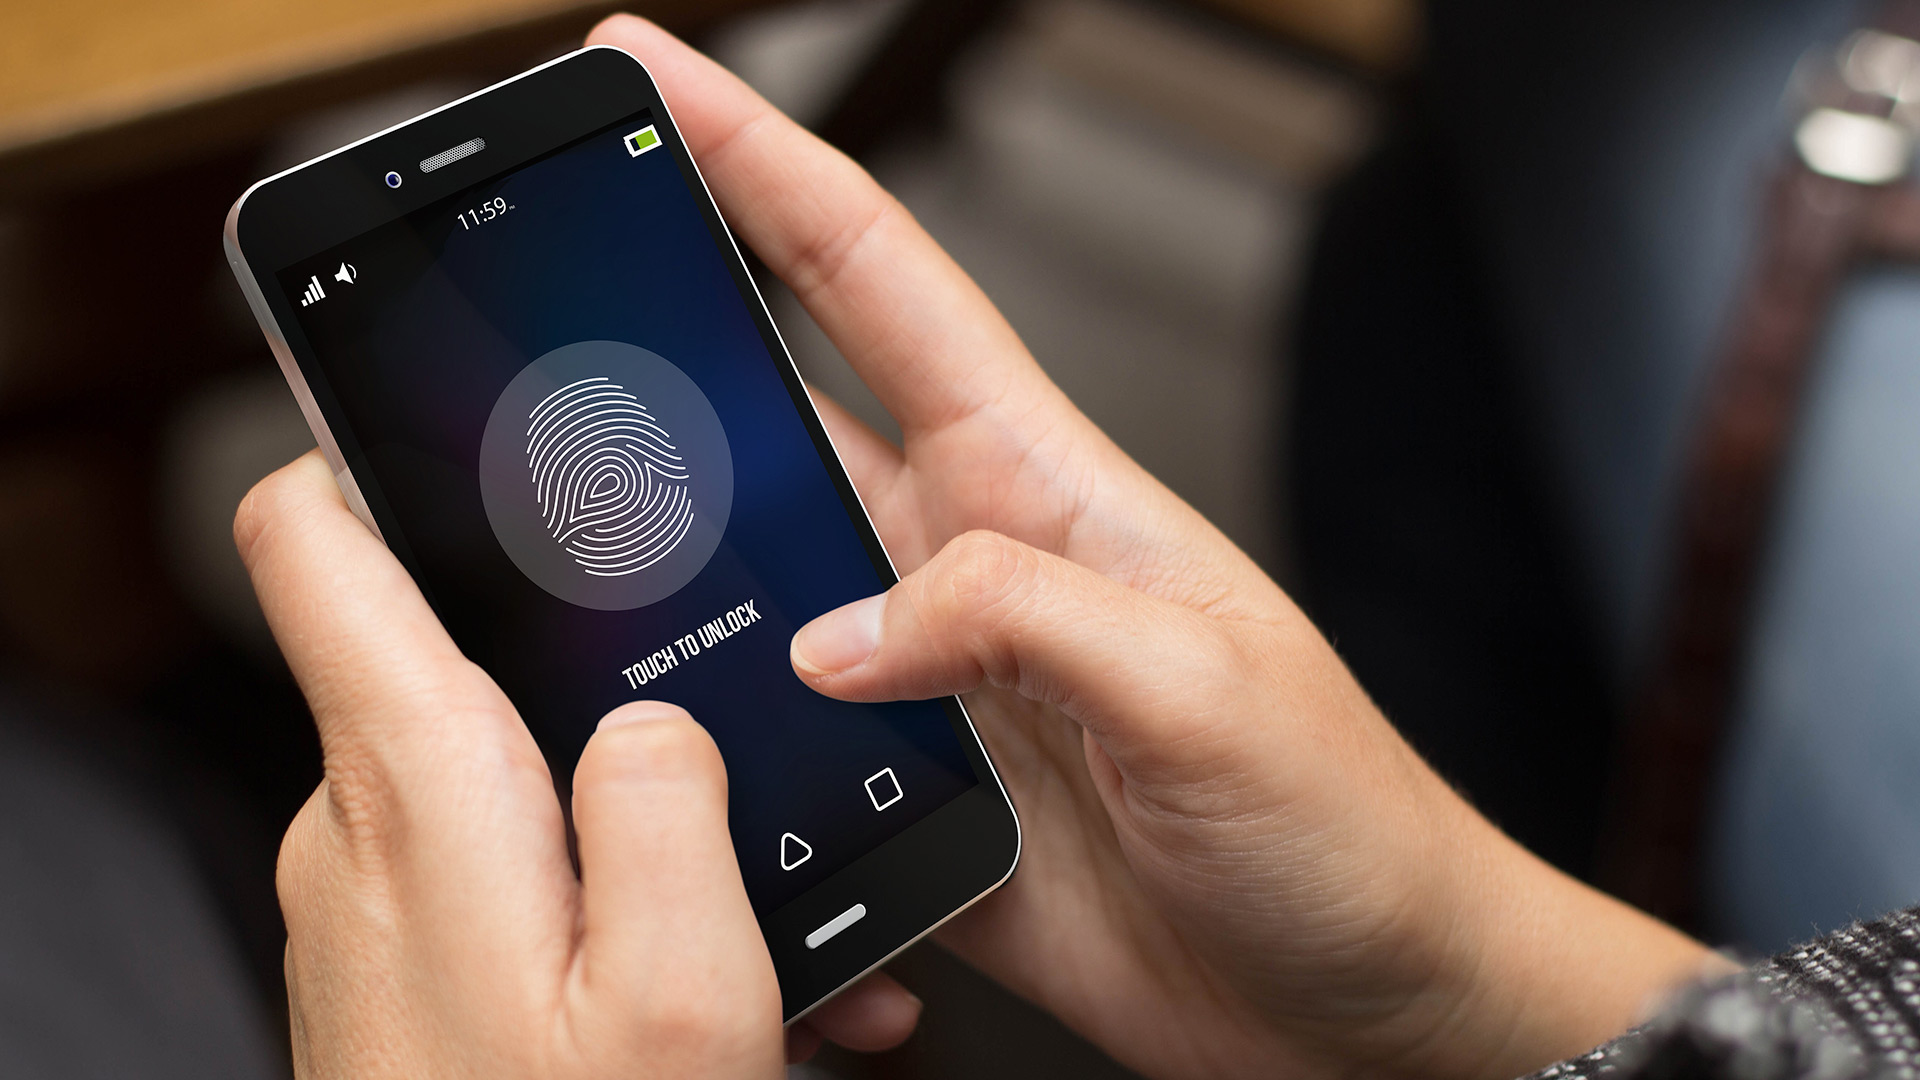 Cellphone in hands with fingerprint ID lock screen